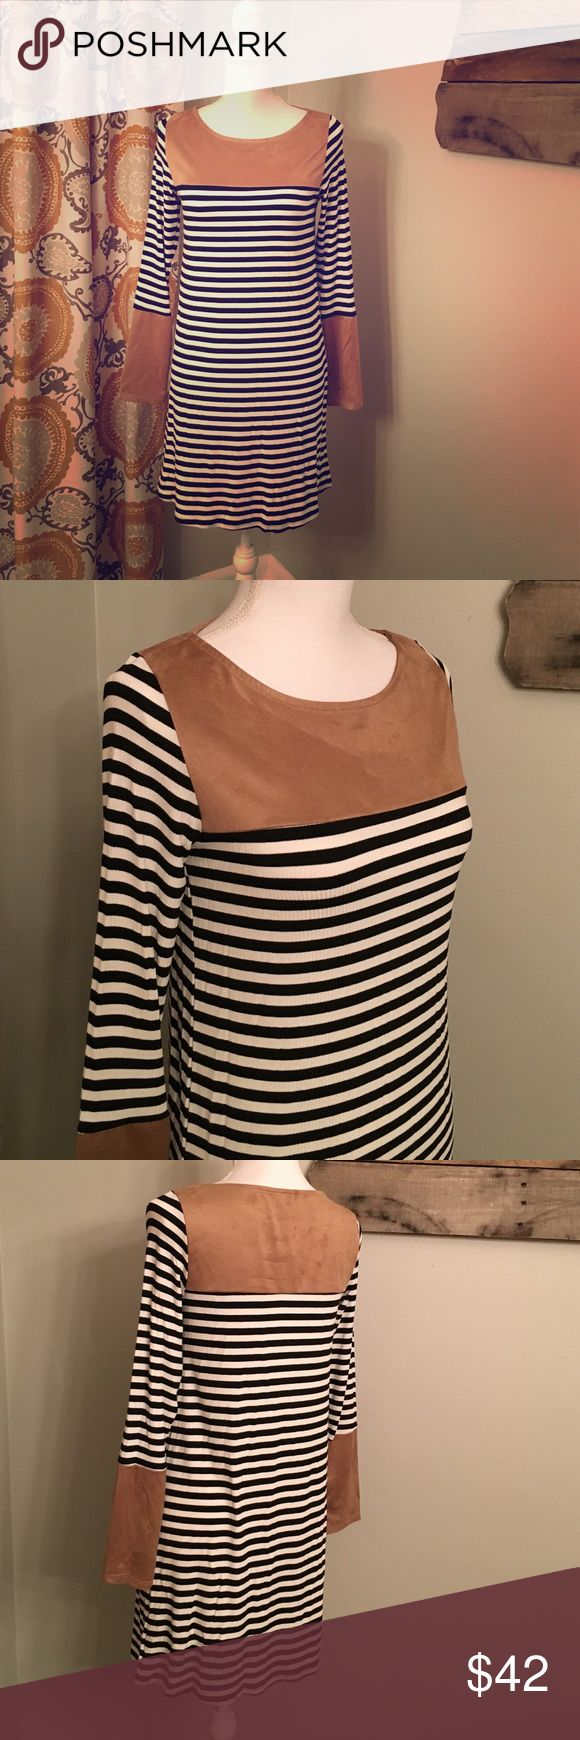 🆕💥SALE💥Stripe Dress With Faux Suede Detail The perfect weekend dress! Throw on with boots and a puffer vest and you're out the door! Super comfy. Black and white stripe with tan faux suede at top and on sleeves. Available  in L, XL. Dresses